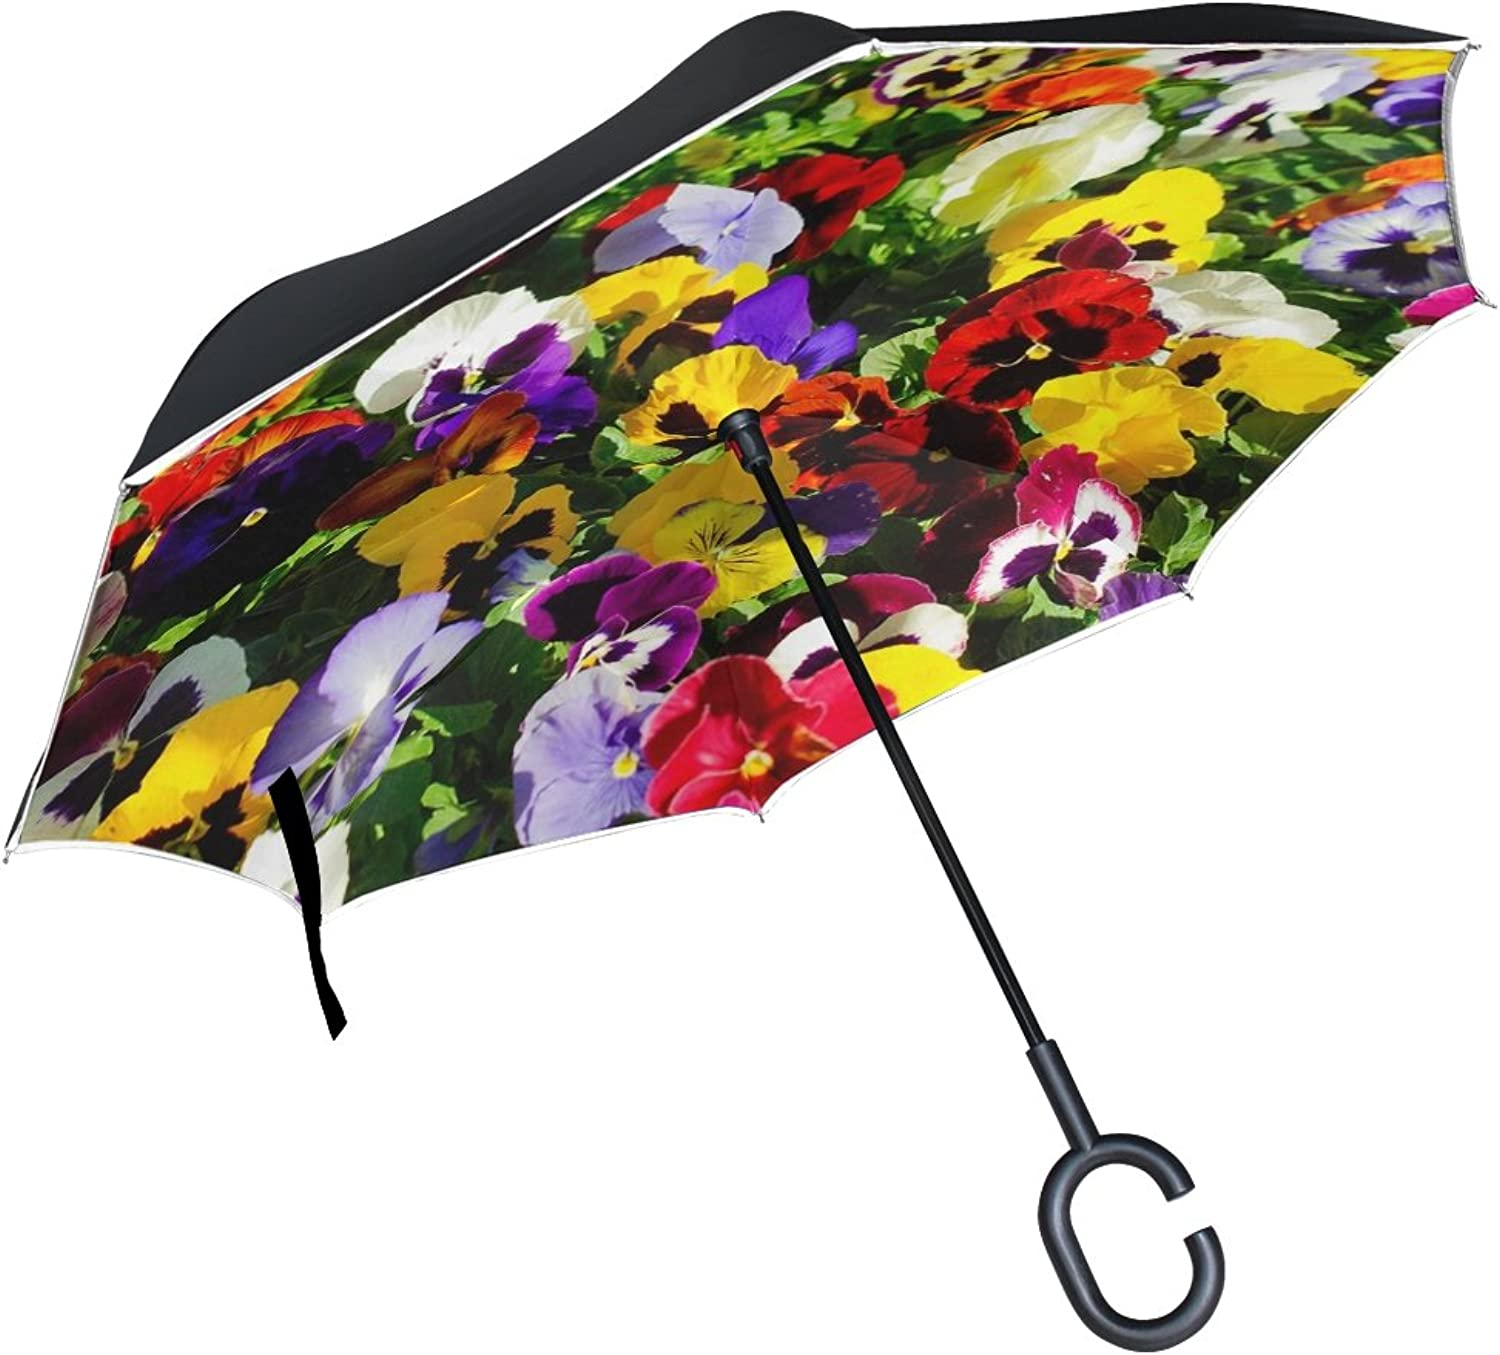 Double Layer Ingreened Flowers Thoughts Plant Parterre Umbrellas Reverse Folding Umbrella Windproof Uv Predection Big Straight Umbrella for Car Rain Outdoor with CShaped Handle